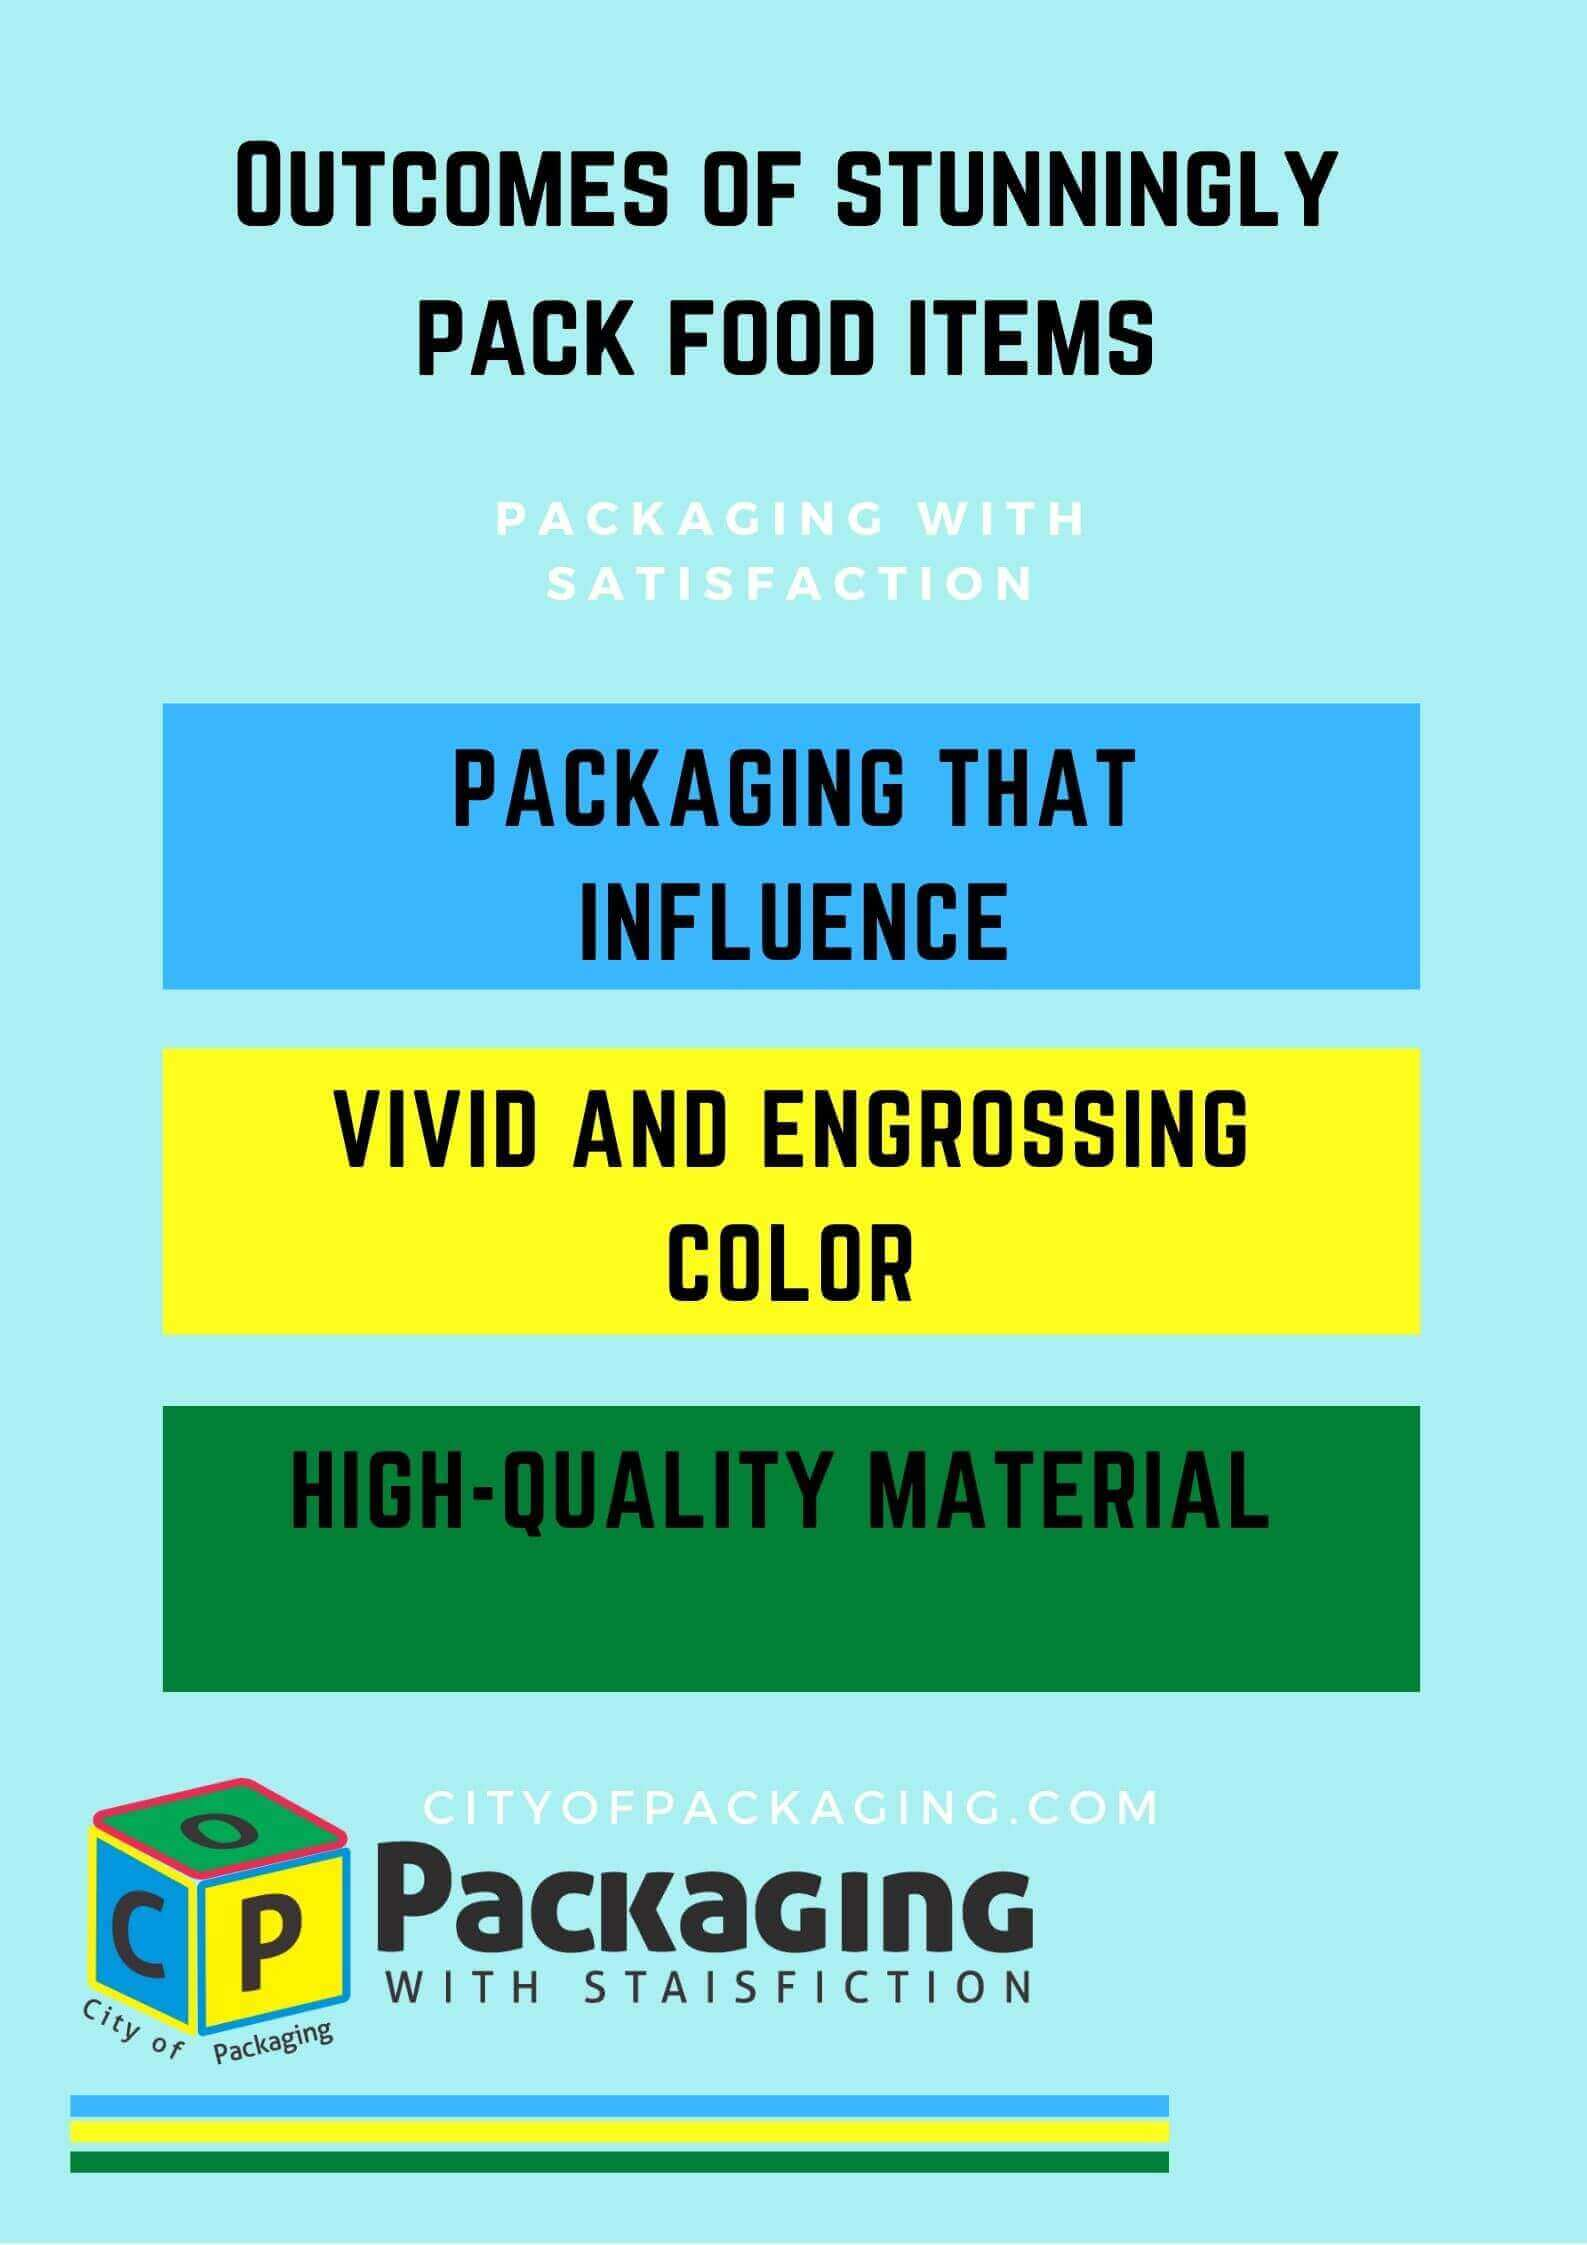 Outcomes of stunningly pack food items, packaging that influences, vivid and attractive colors